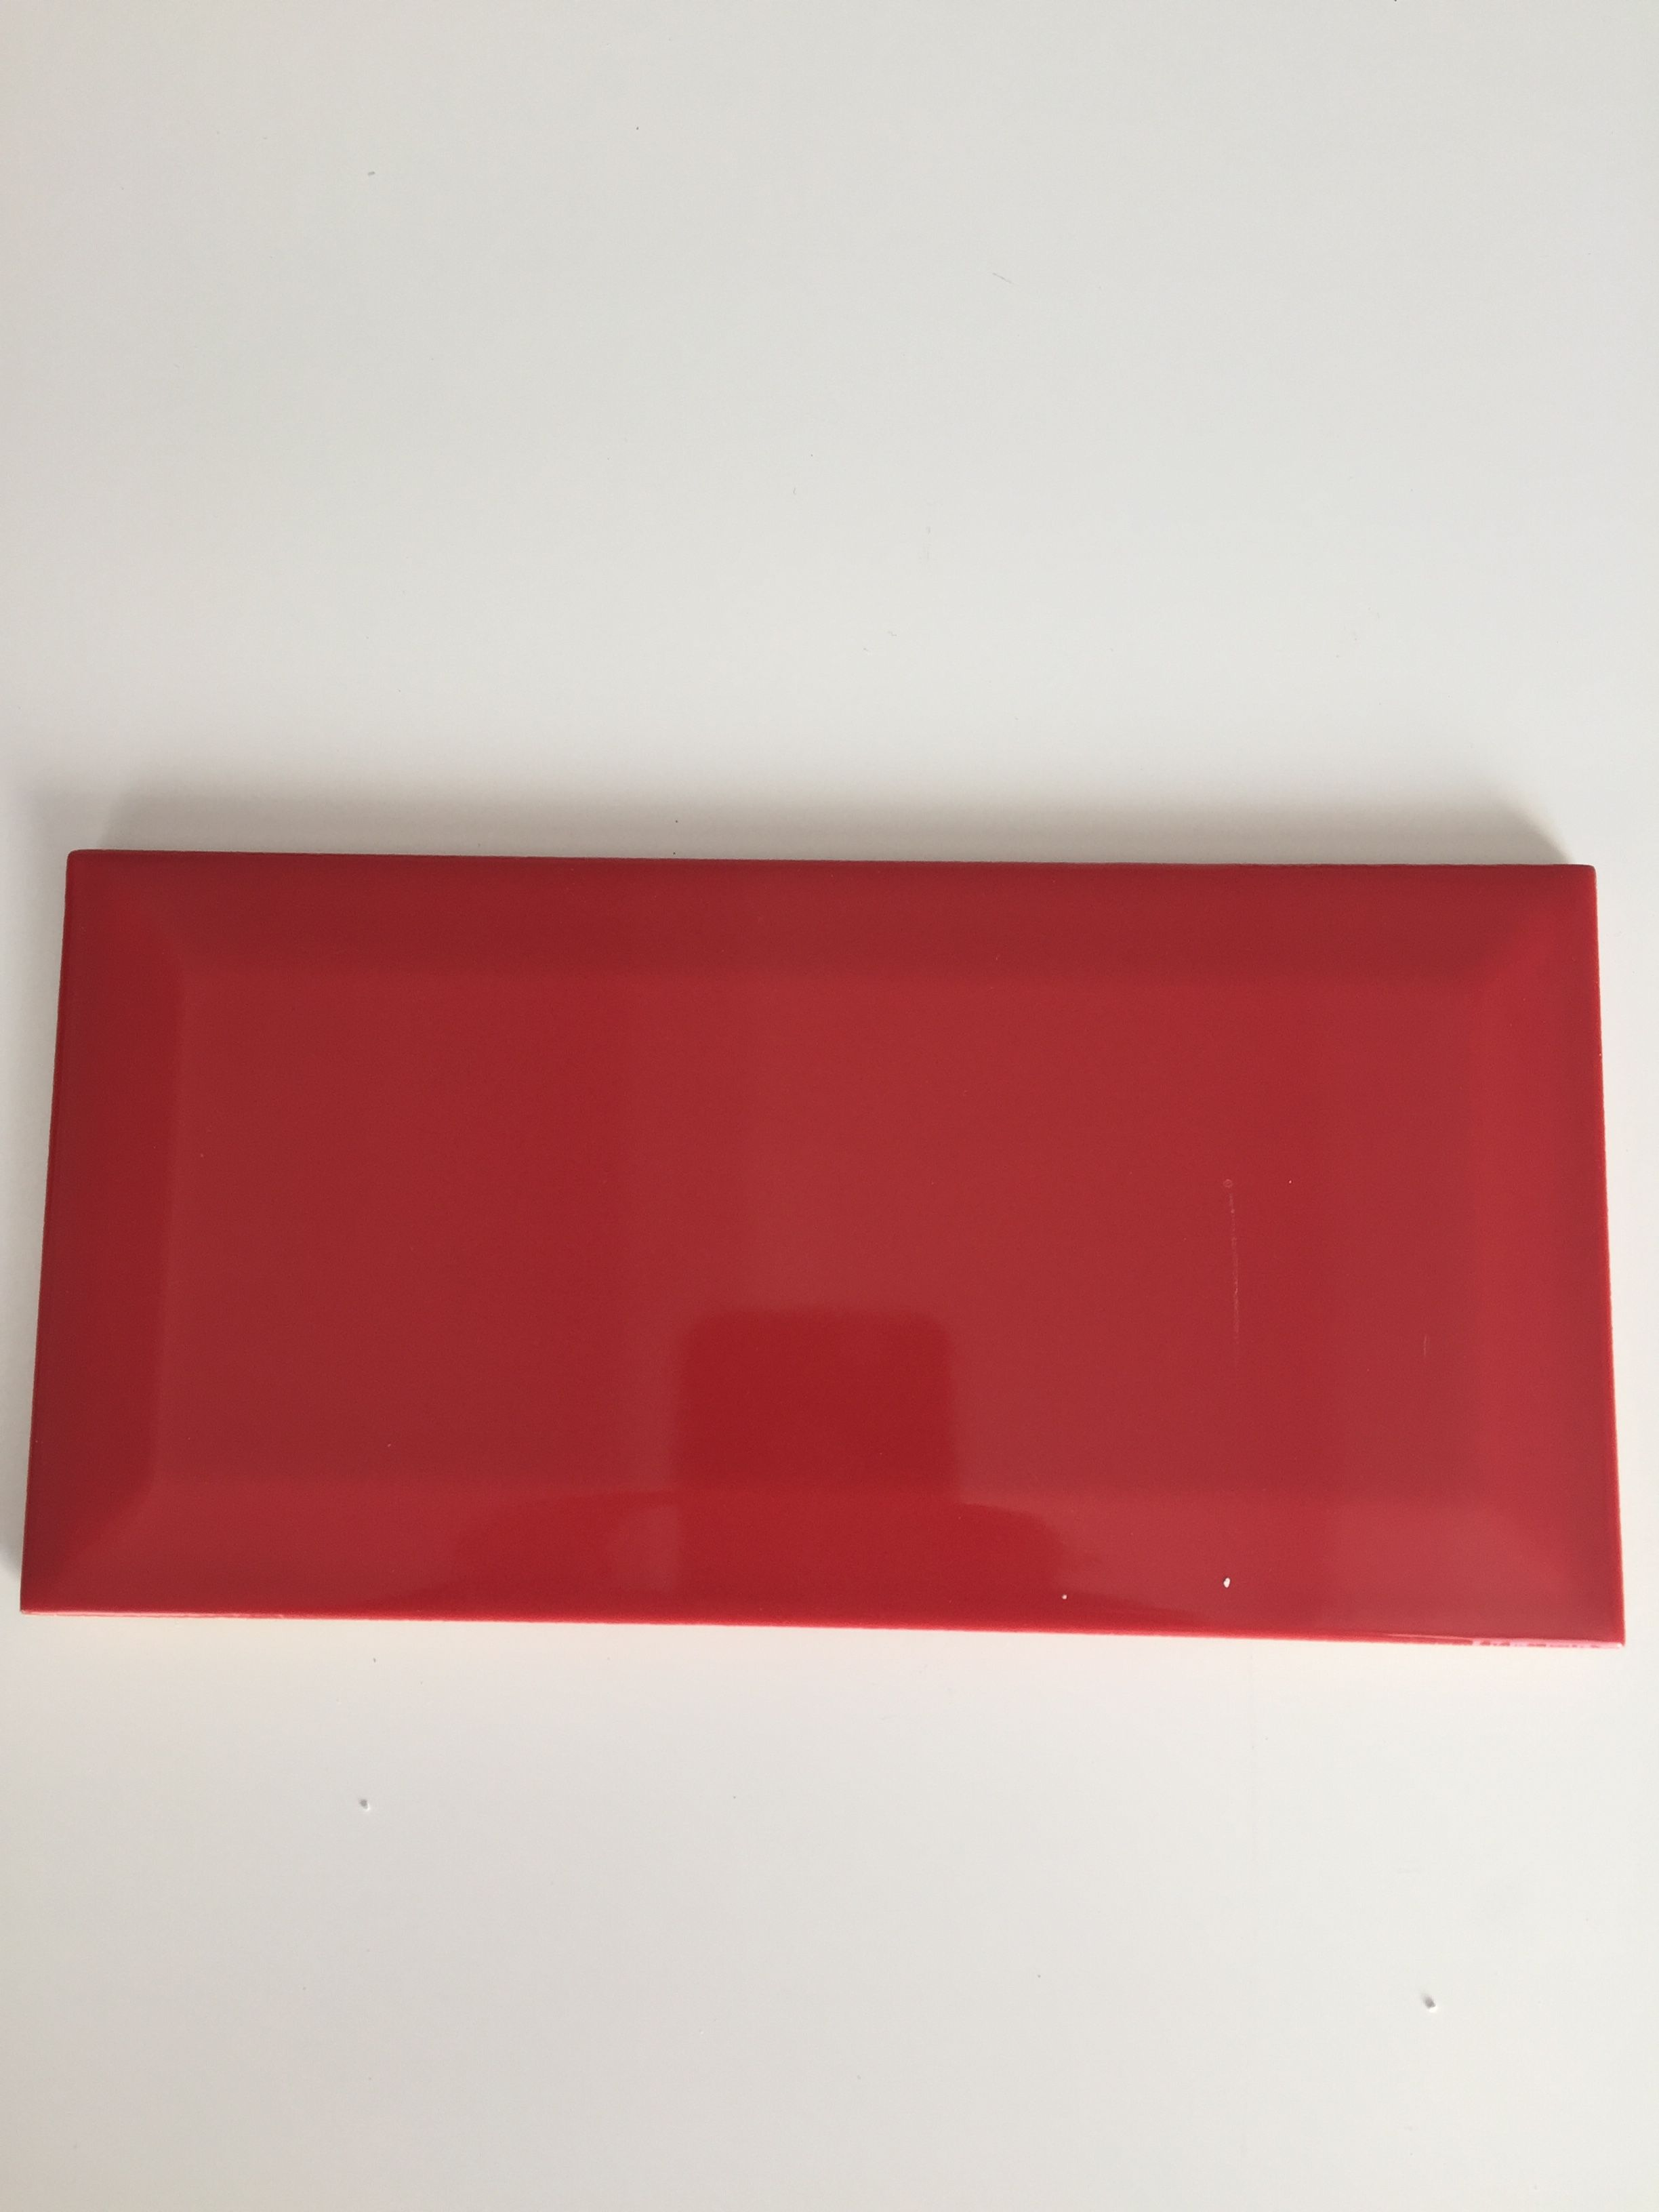 For sale: RED BRICK STYLE TILES